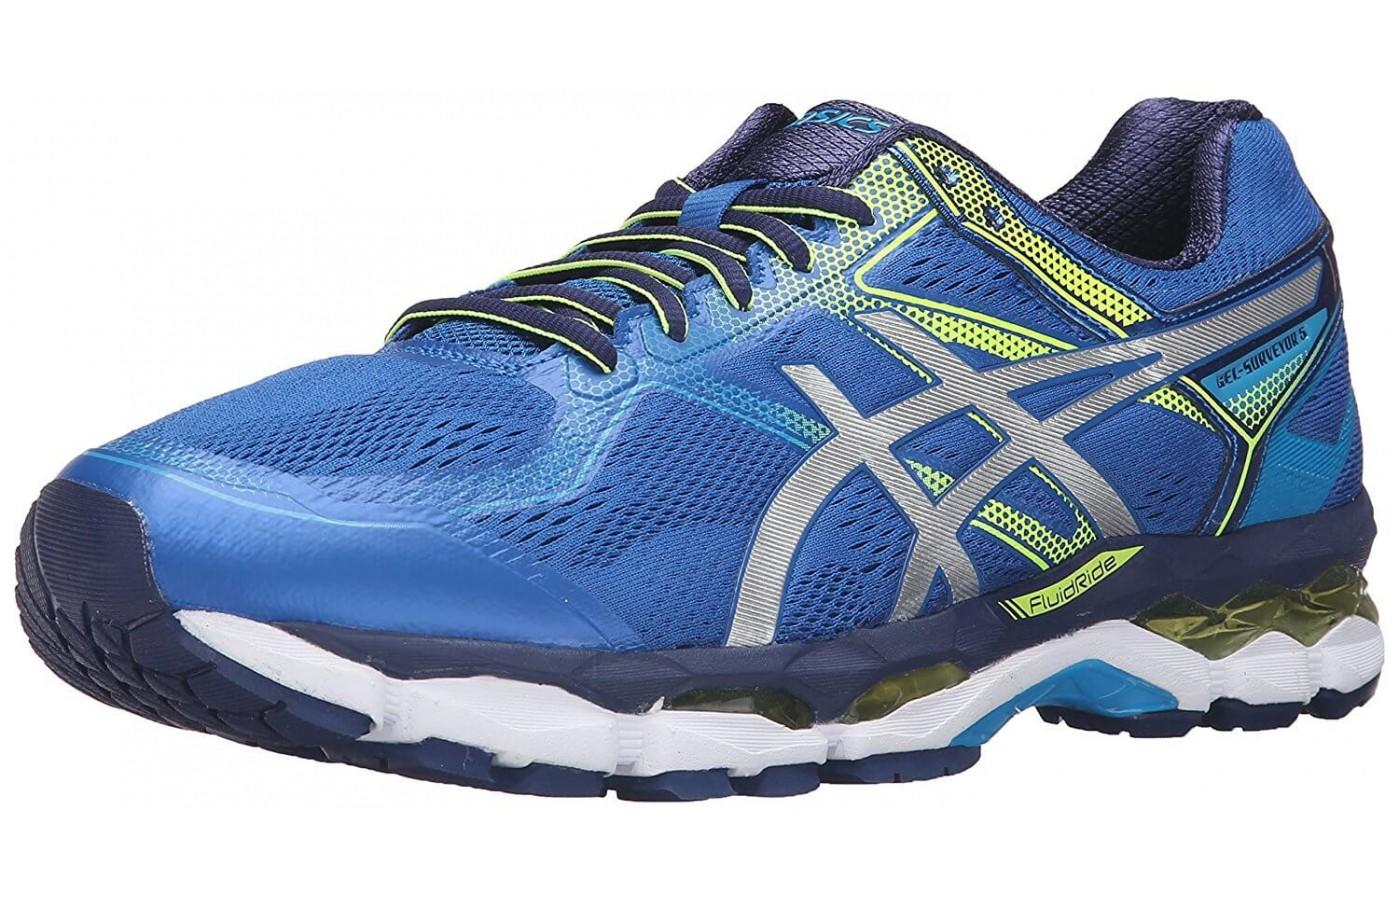 An angled perspective of the ASICS GEL-Surveyor 5.